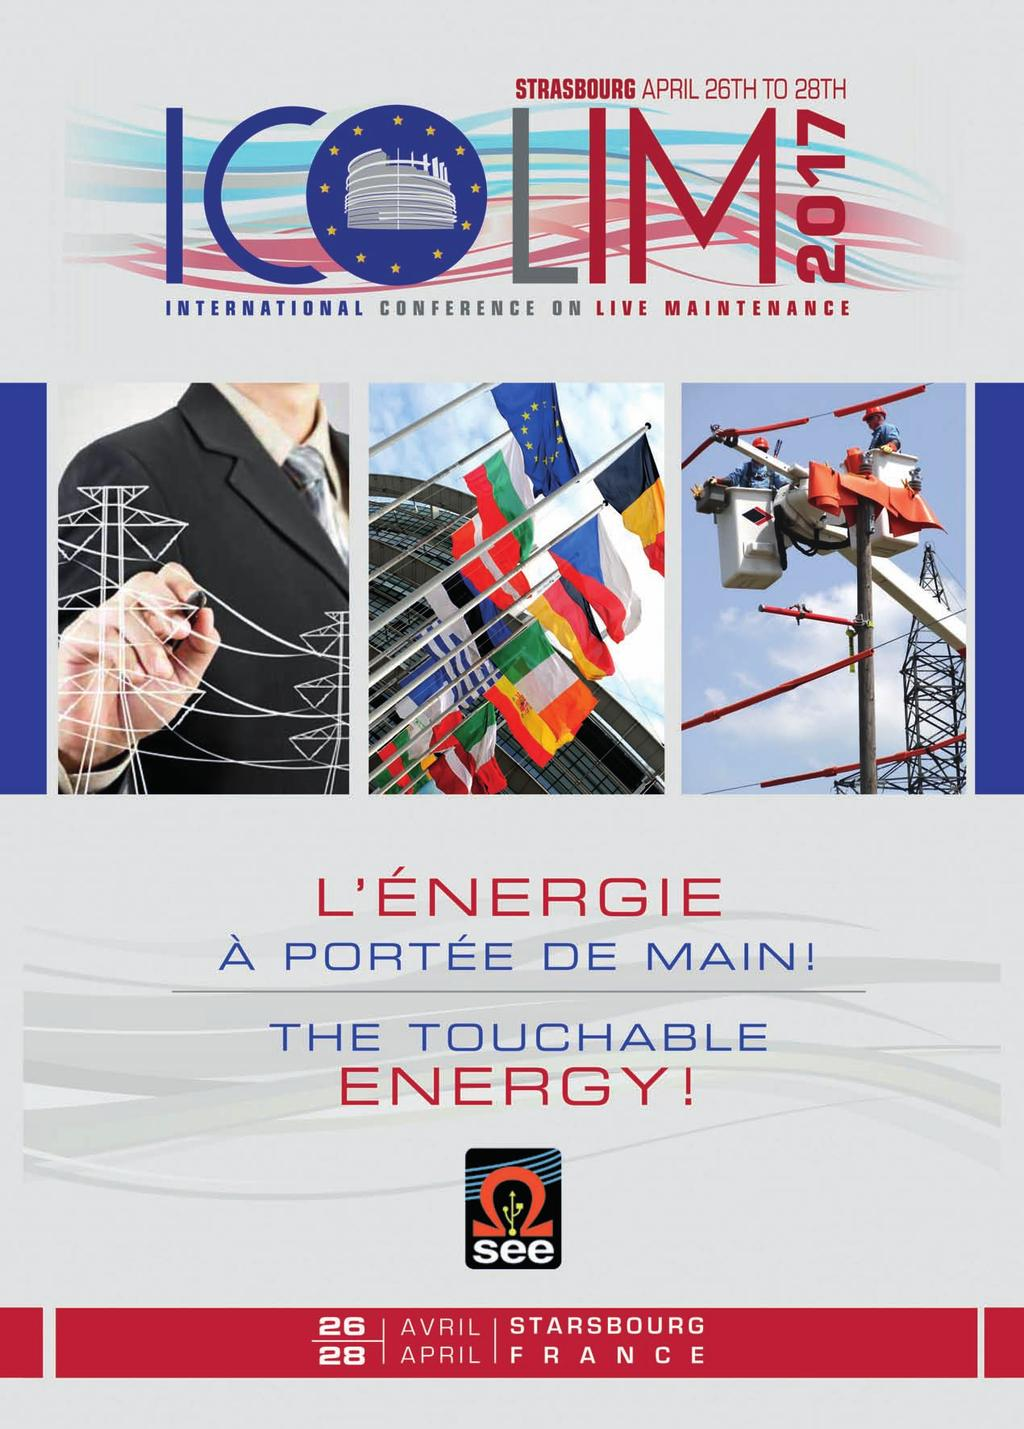 70 Lat Cigr Session From 21 Till 26 3 2017 753 August 2016 Paris Gt Power Cable Xlpe Steel Wire Armoured 4x70mm2 France International Council On Large Electric Systems Conseil Des Grands Rseaux Lectriques